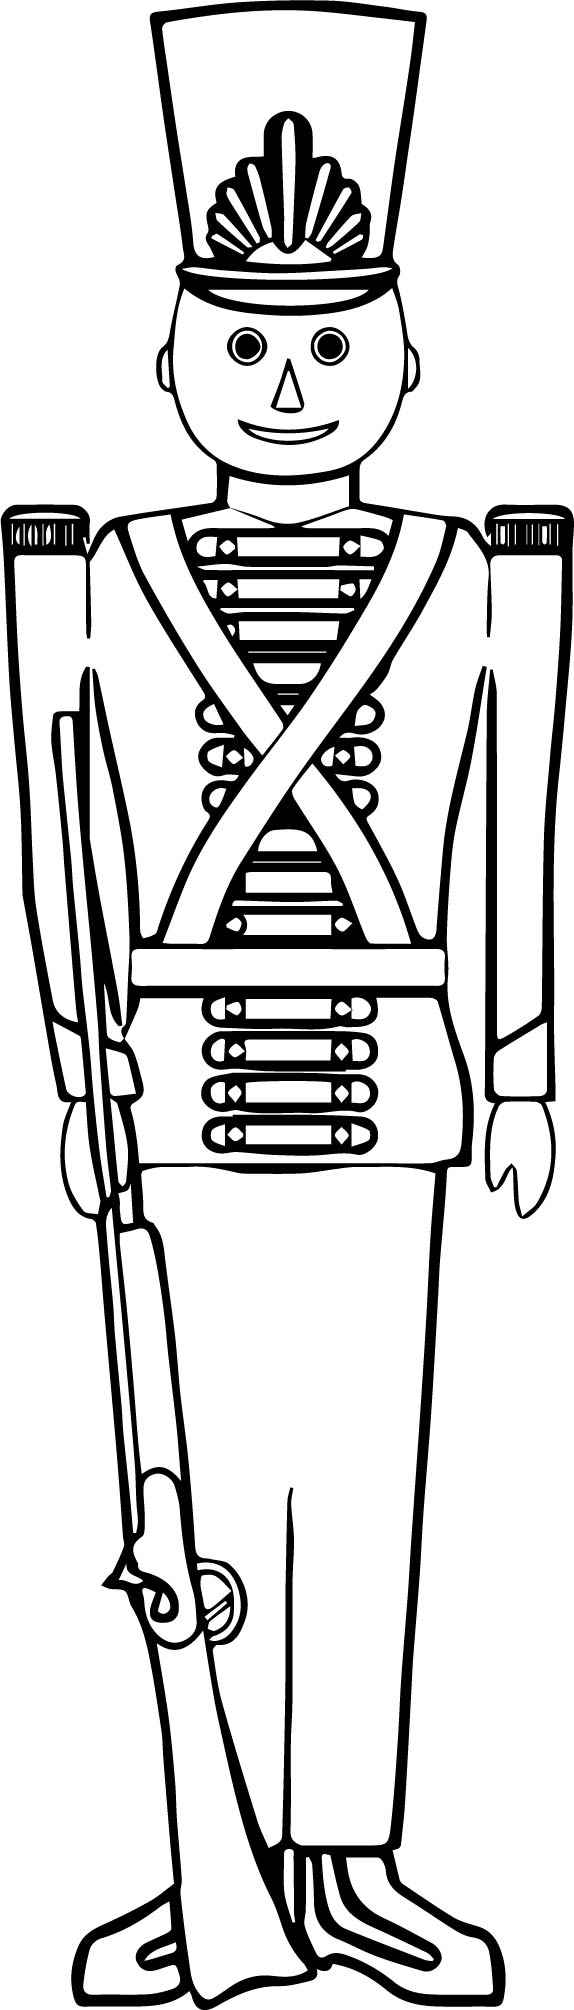 coloring pages of toy soldier - photo#19